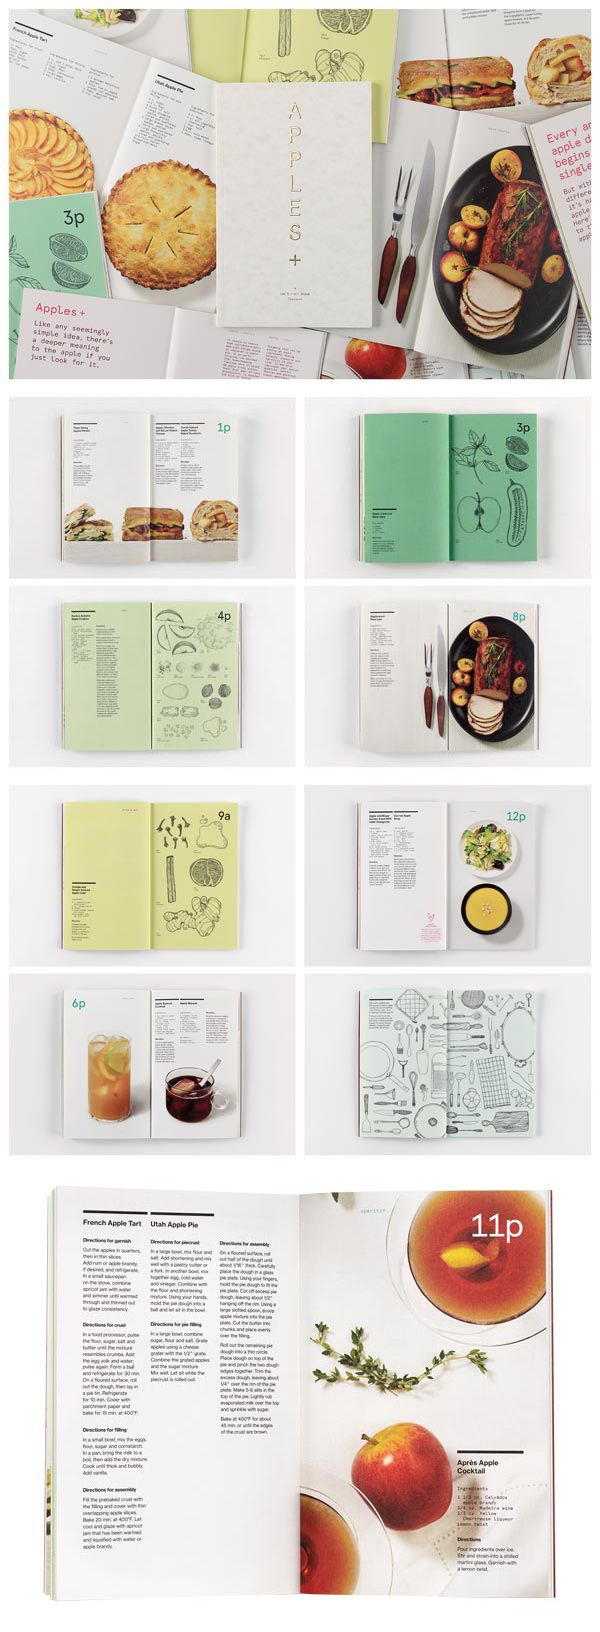 """The """"Apples +"""" cookbook, created by Leo Burnett for its employees, won an Outstanding Achievement award in HOW's In-house Design Awards 2013. Find out how you can enter for 2014 here: http://www.howdesign.com/design-competitions/in-house-design-awards/"""